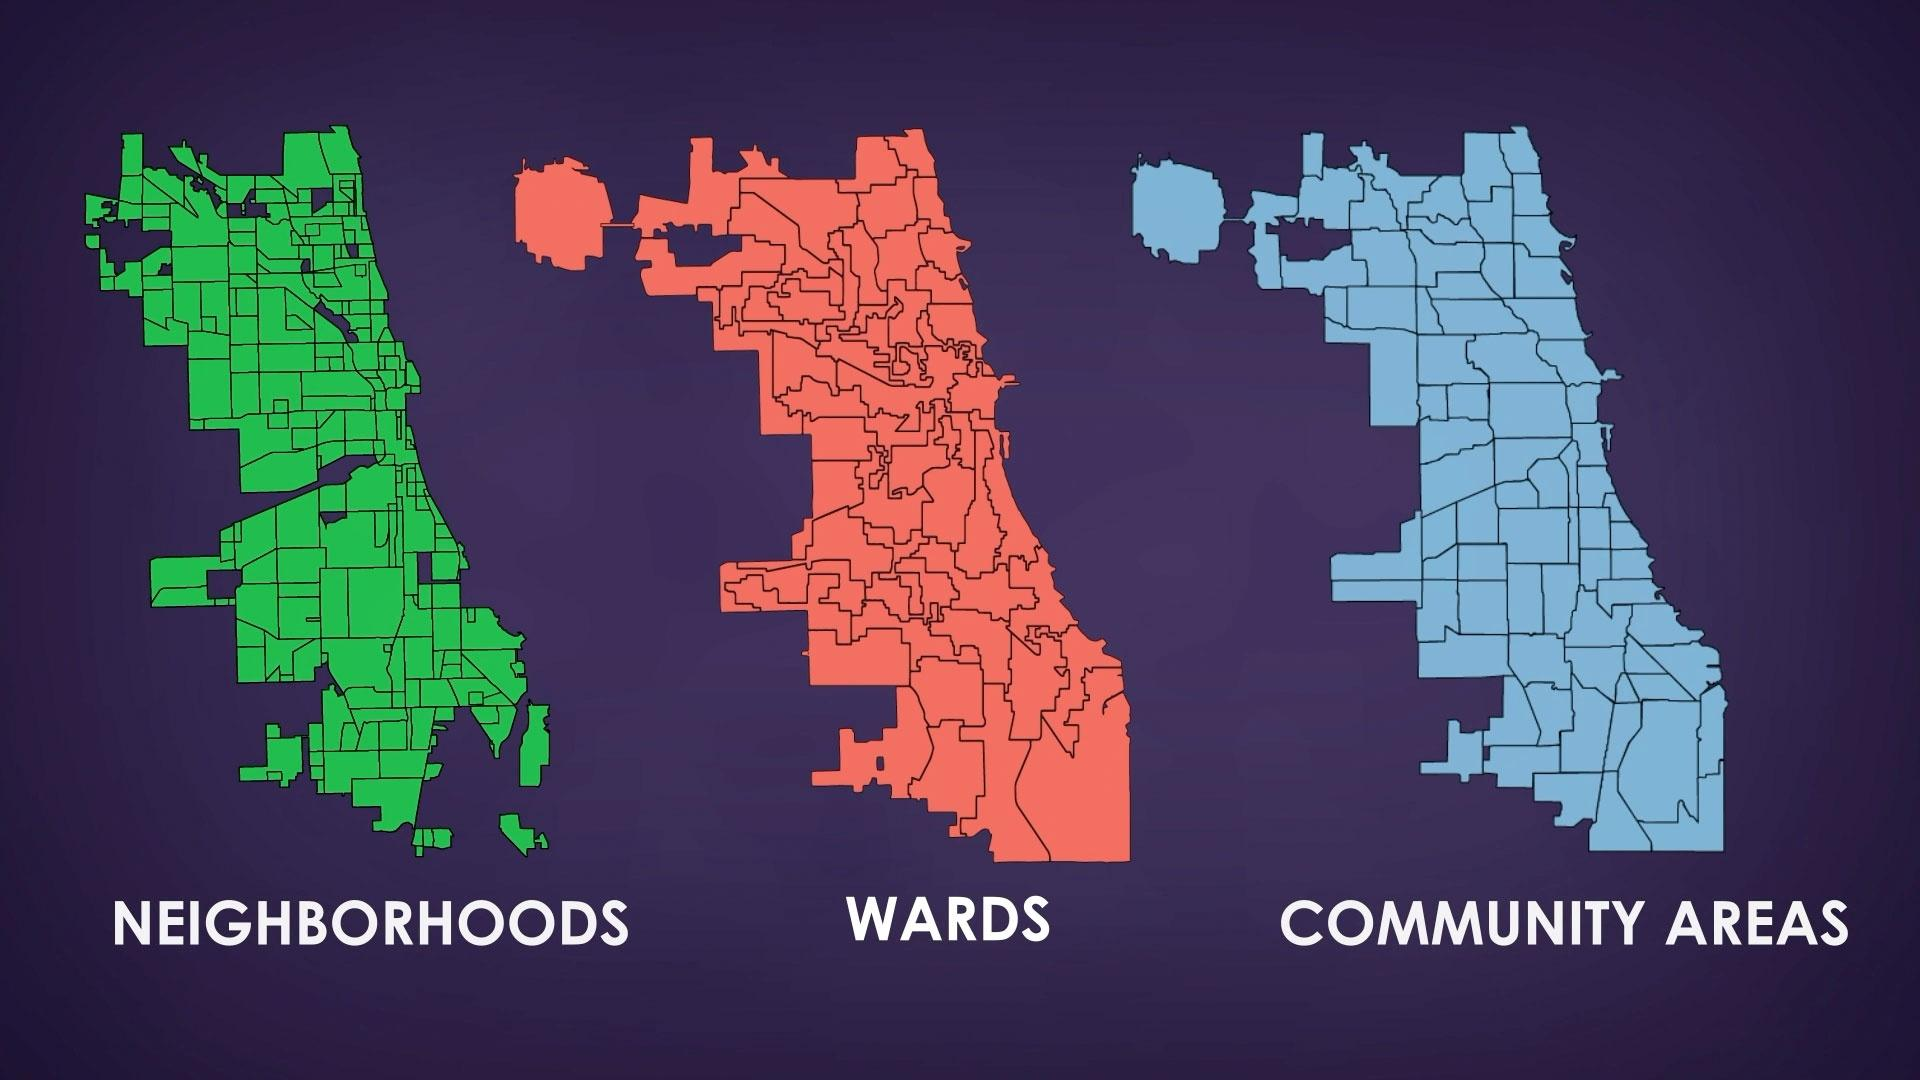 Wards and Community Areas and Neighborhoods? Oh My